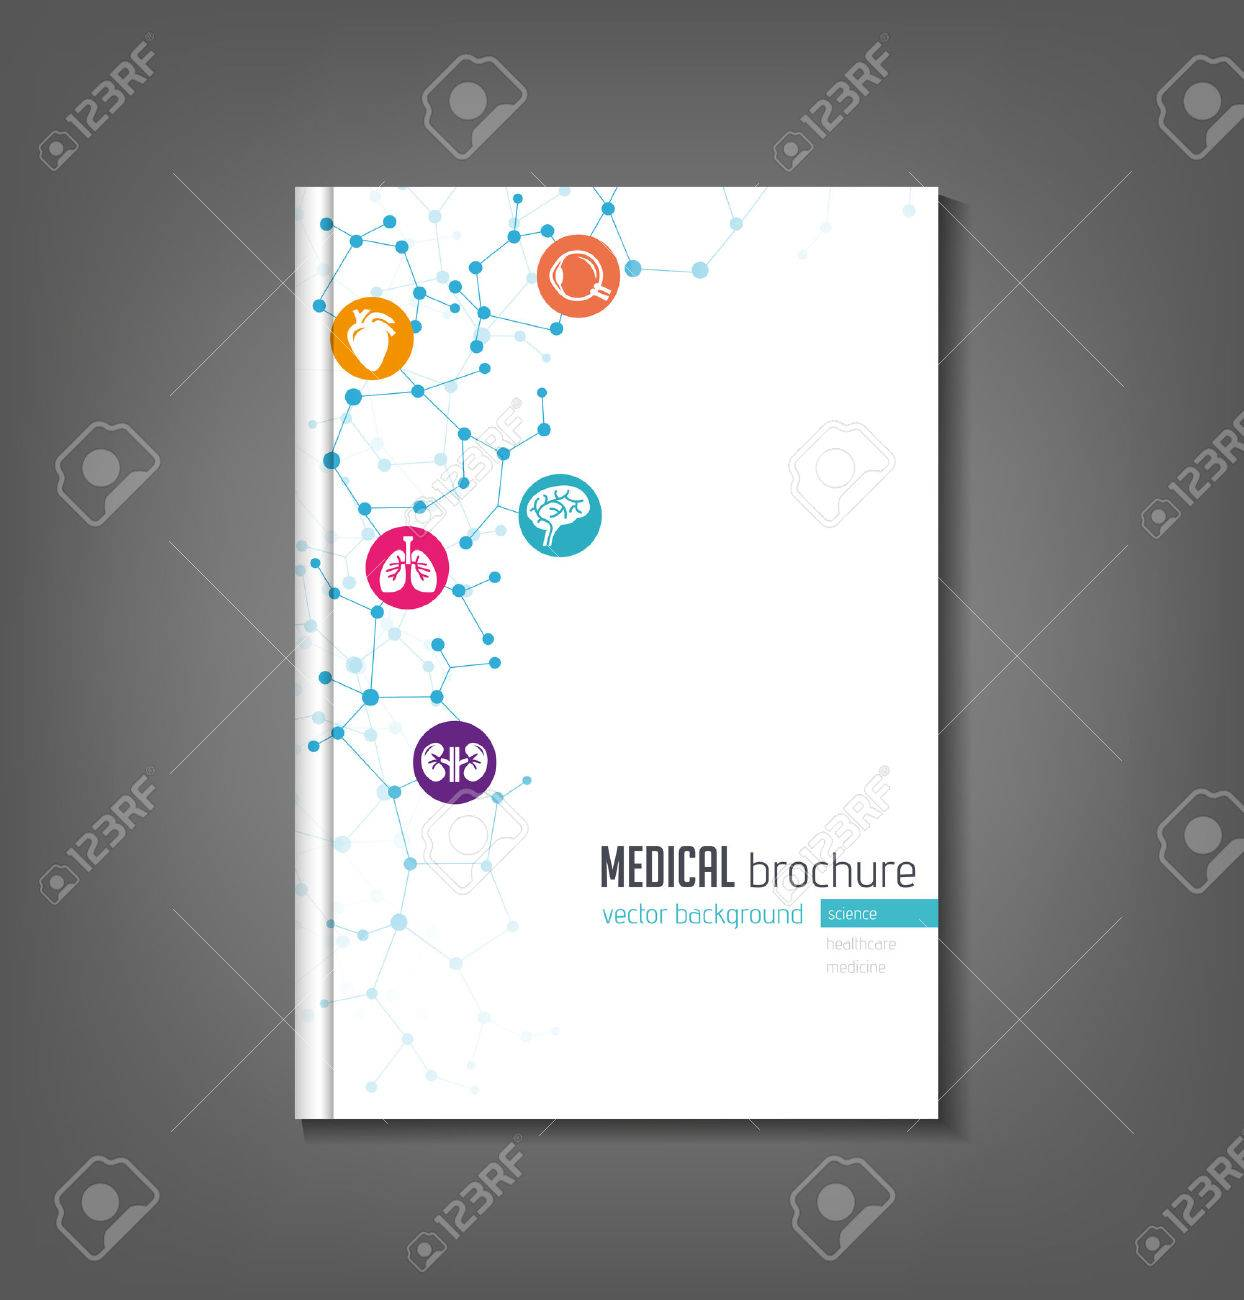 brochure template medical topics healthcare science technology stock vector 50453676